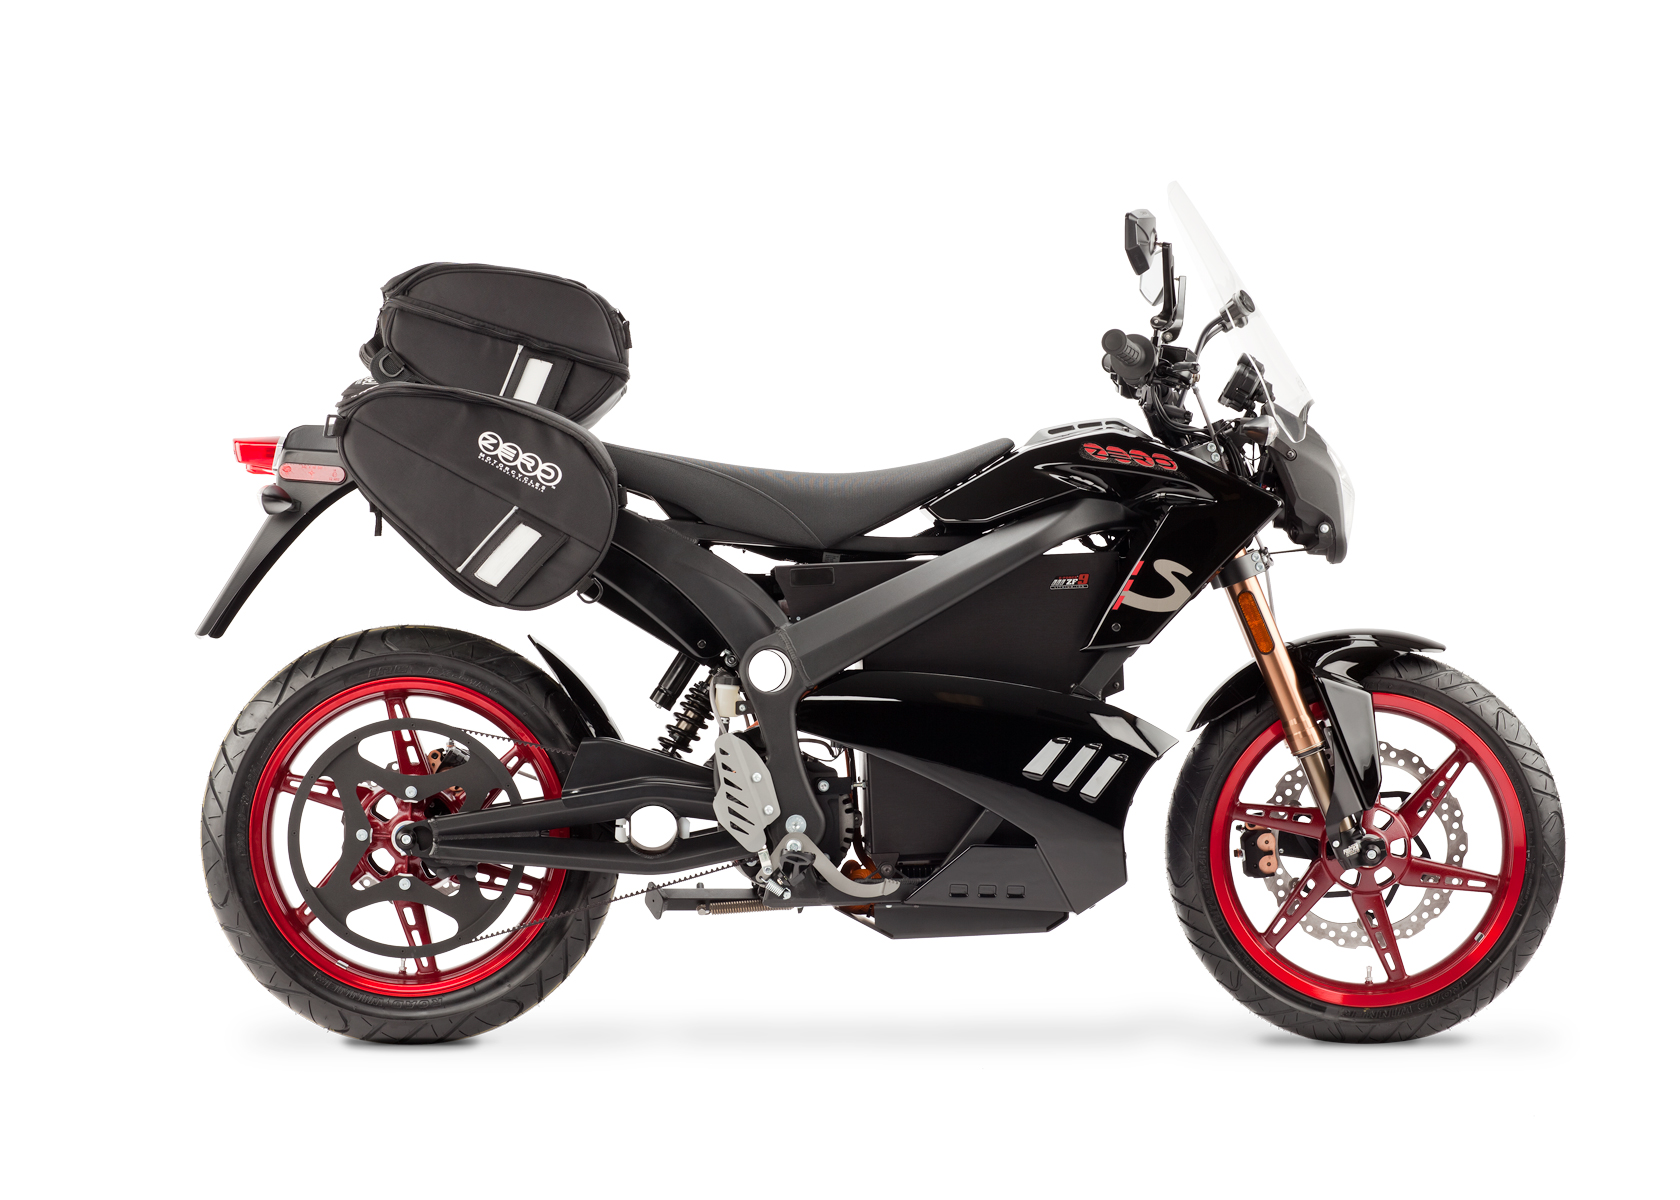 2012 Zero S Electric Motorcycle: Black Profile Right with Side Bags and Windscreen, White Background